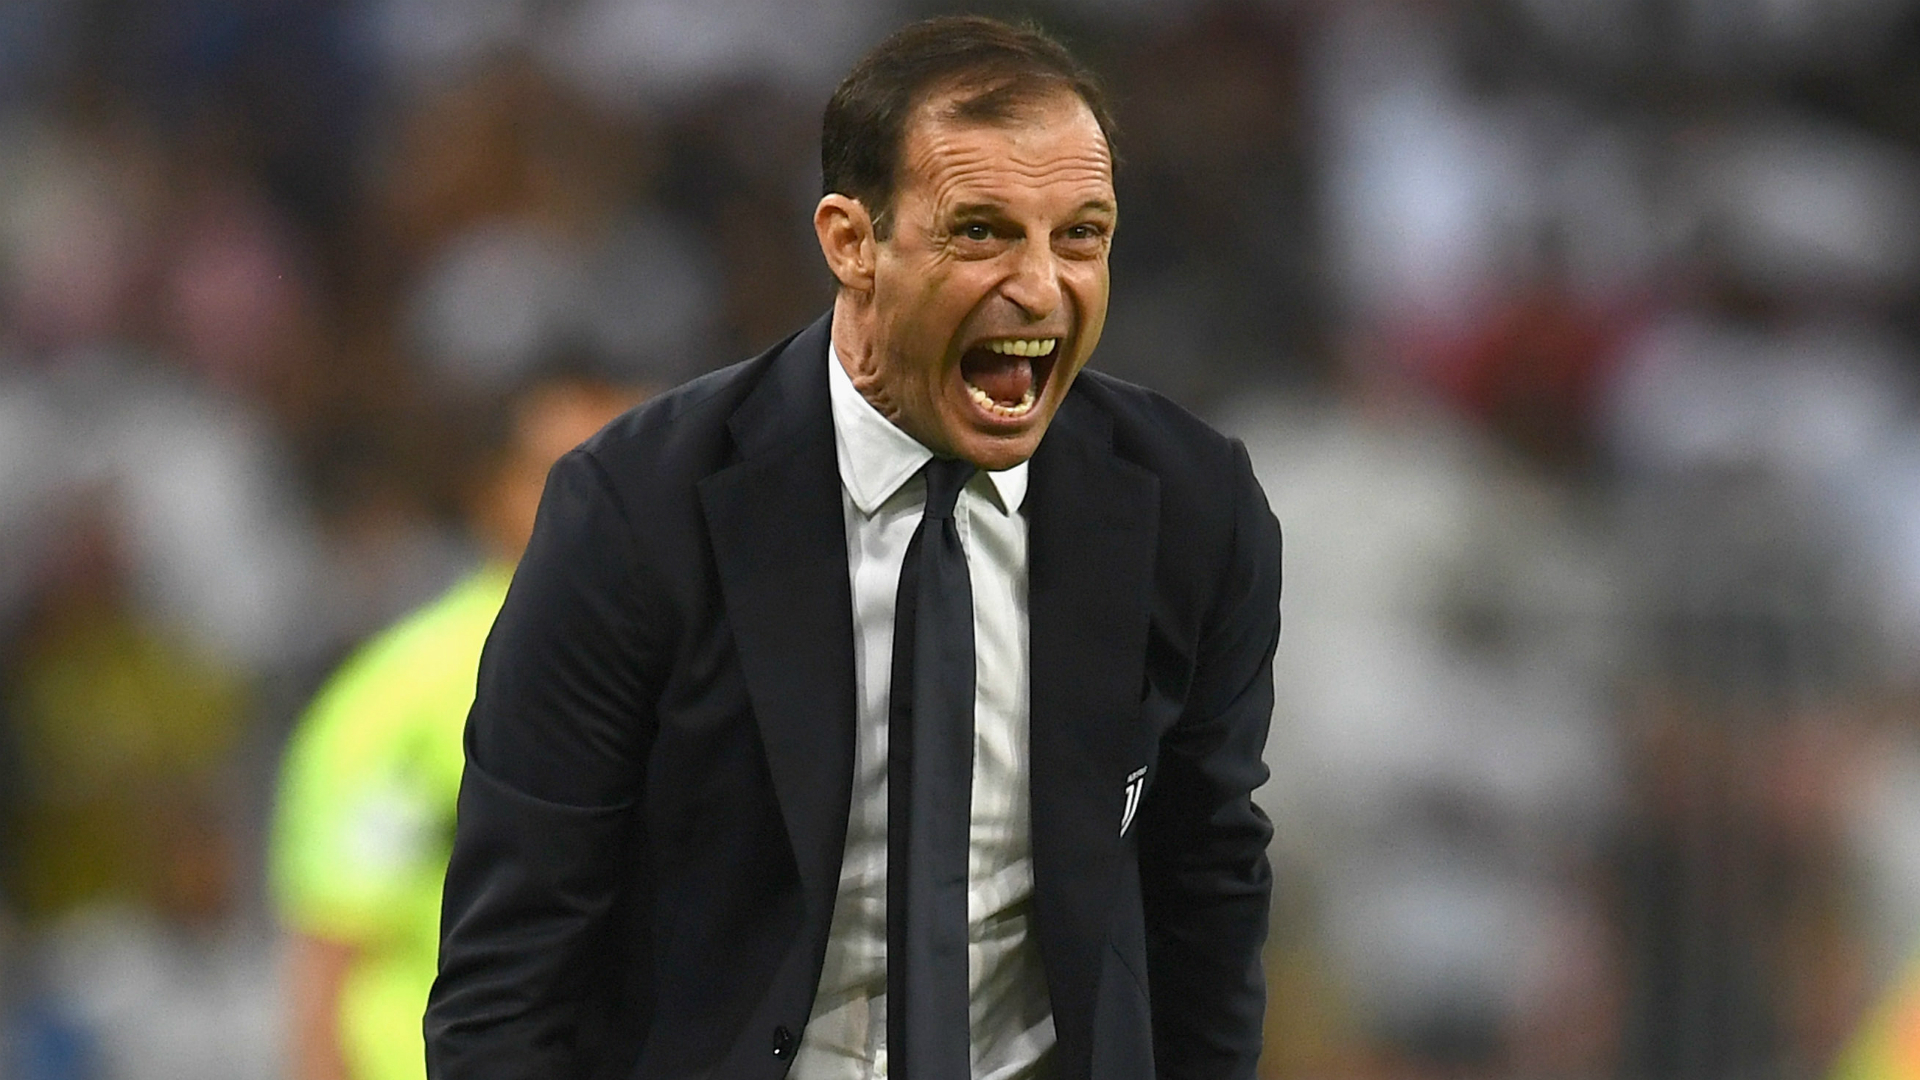 Champions League hangover behind Juve defeat - Allegri